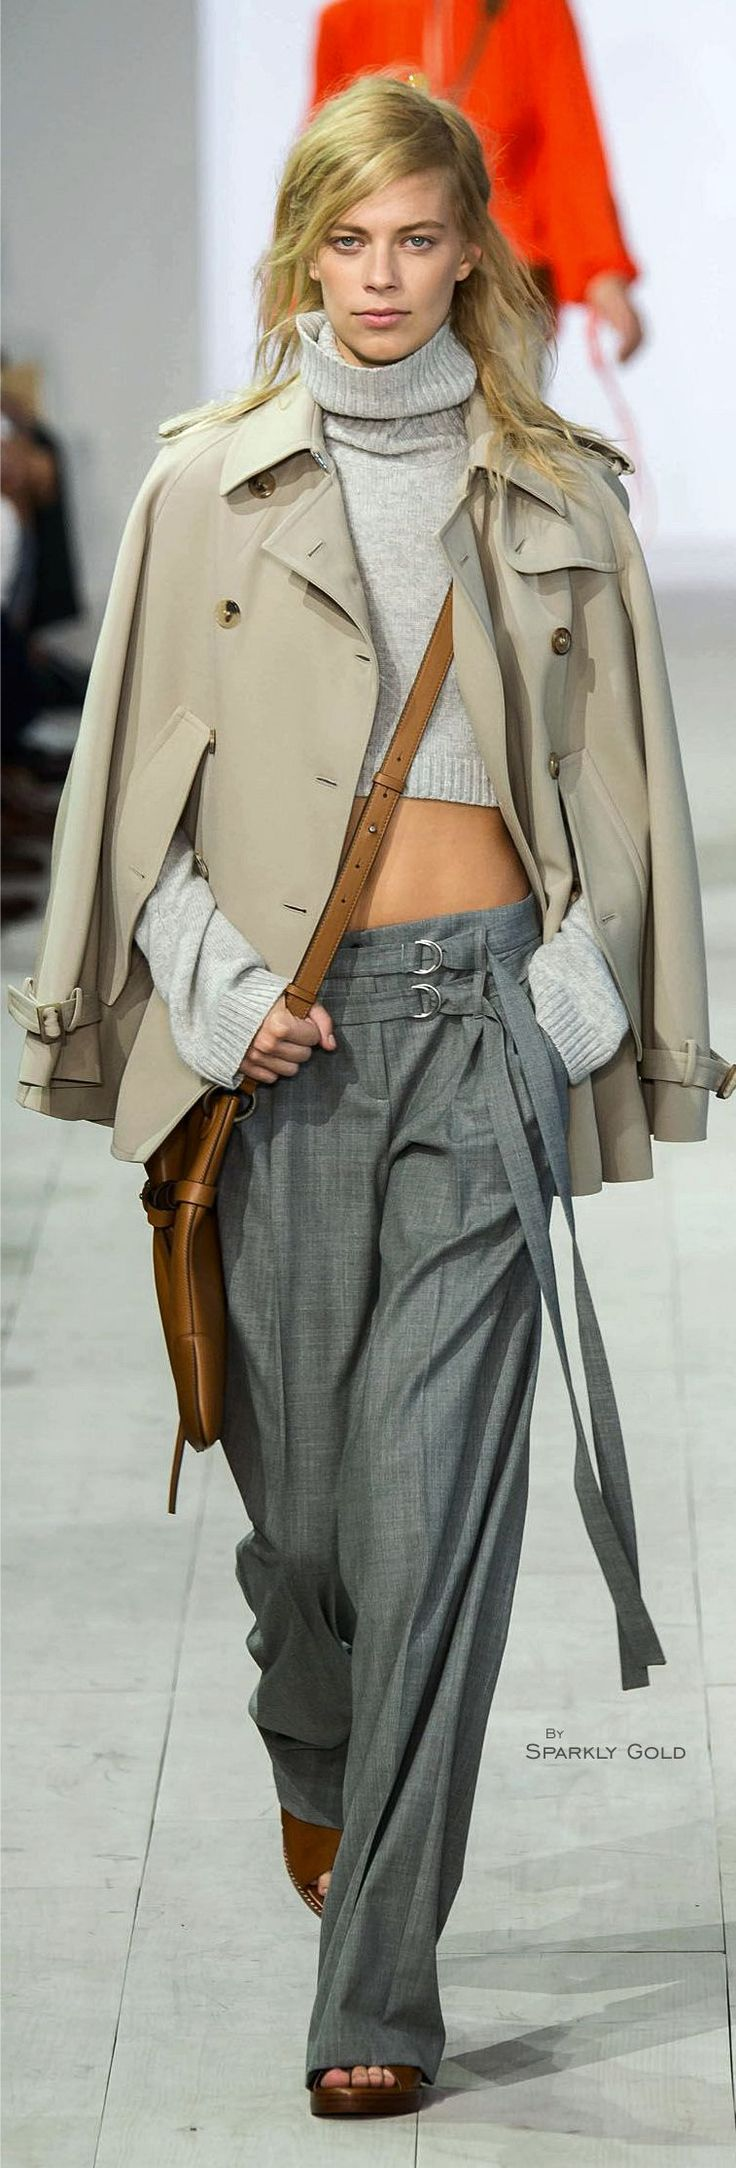 Michael Kors Spring 2016 RTW ...... Also, Go to RMR 4 awesome news!! ...  RMR4 INTERNATIONAL.INFO  ... Register for our Product Line Showcase Webinar  at:  www.rmr4international.info/500_tasty_diabetic_recipes.htm    ... Don't miss it!